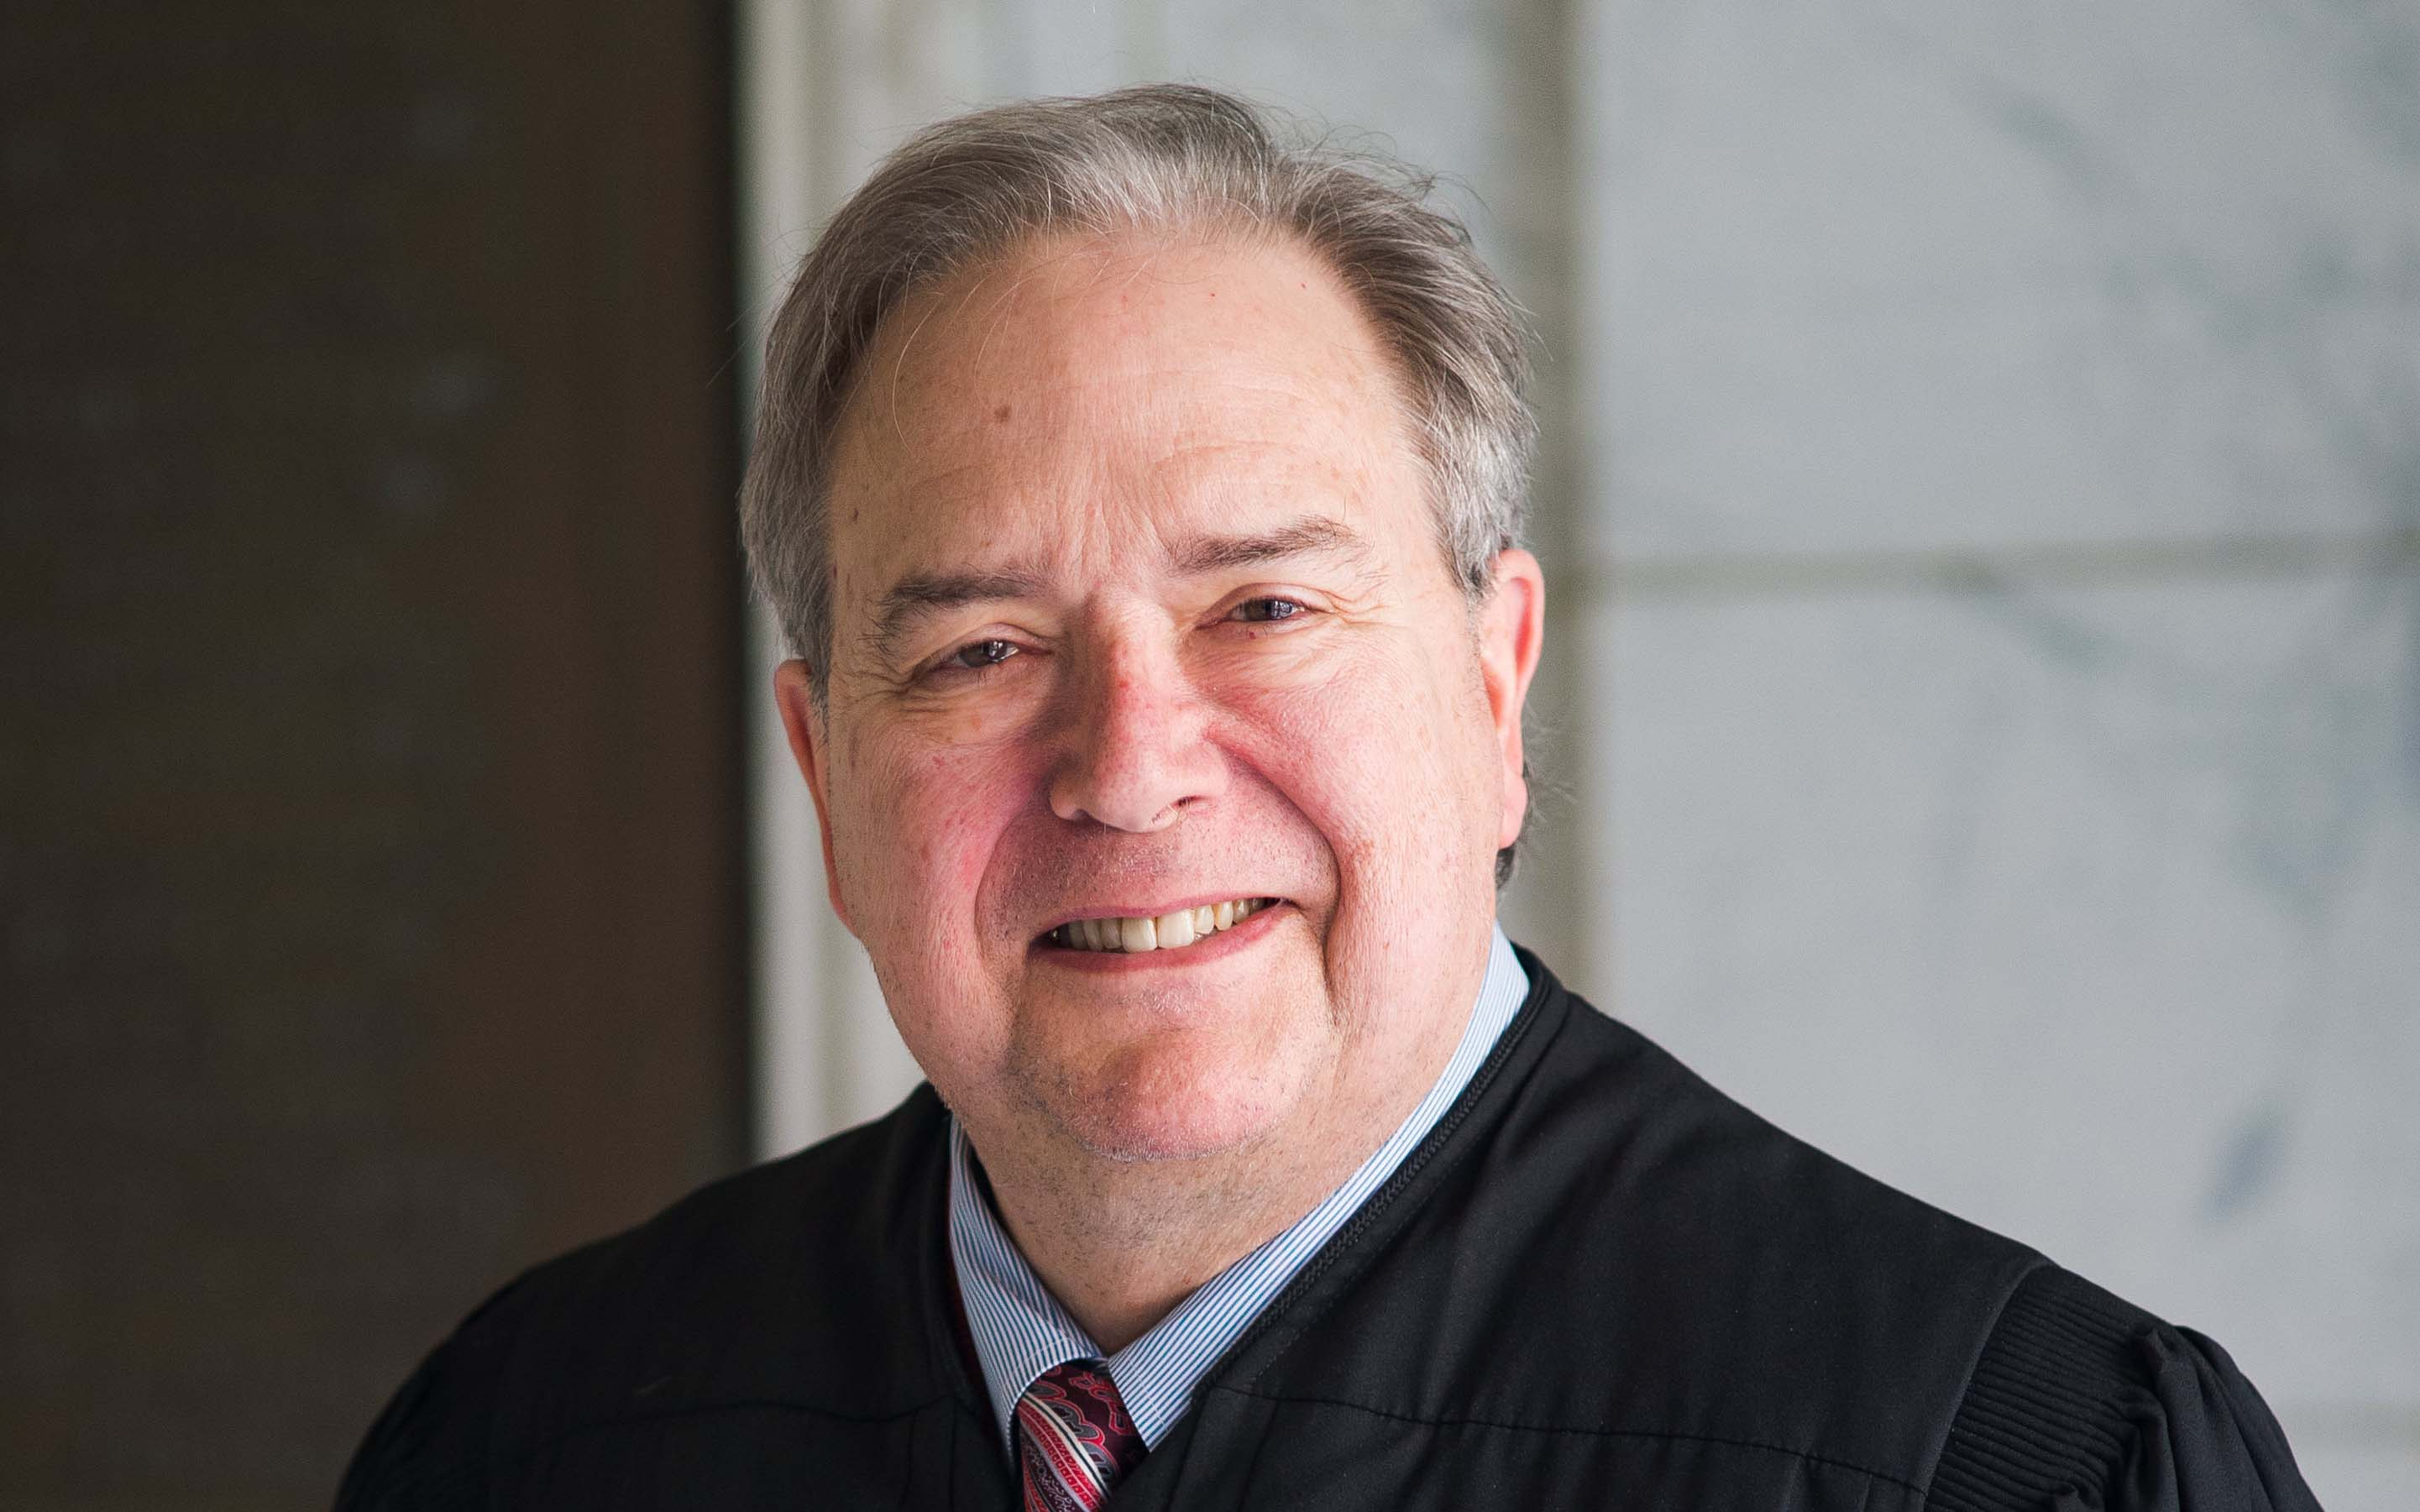 Judge Morgan Welch